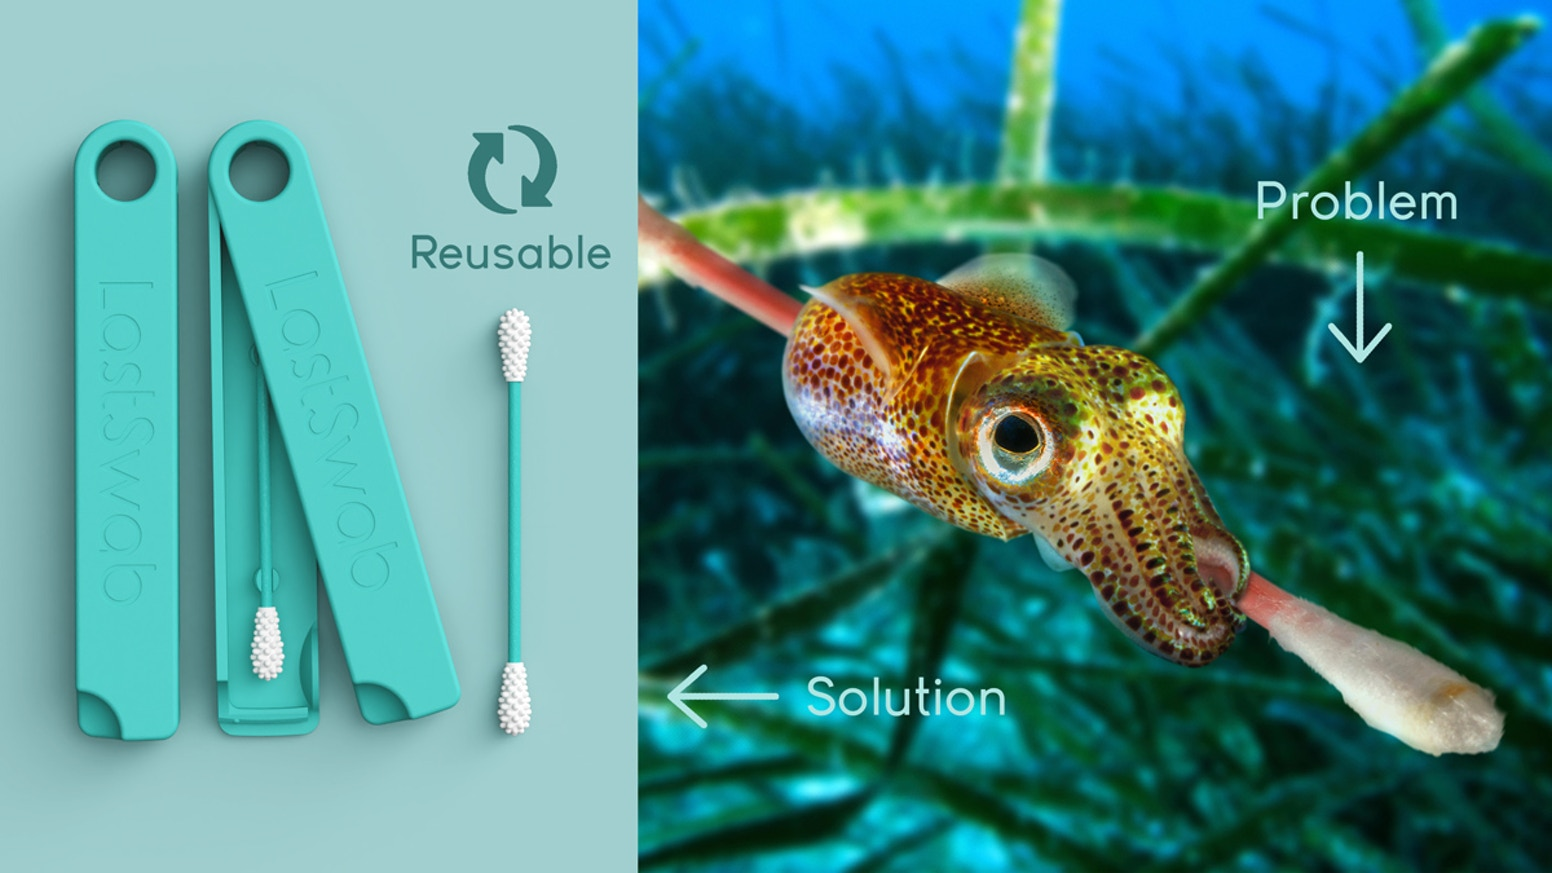 A sustainable alternative to the cotton swabs, cotton buds and others